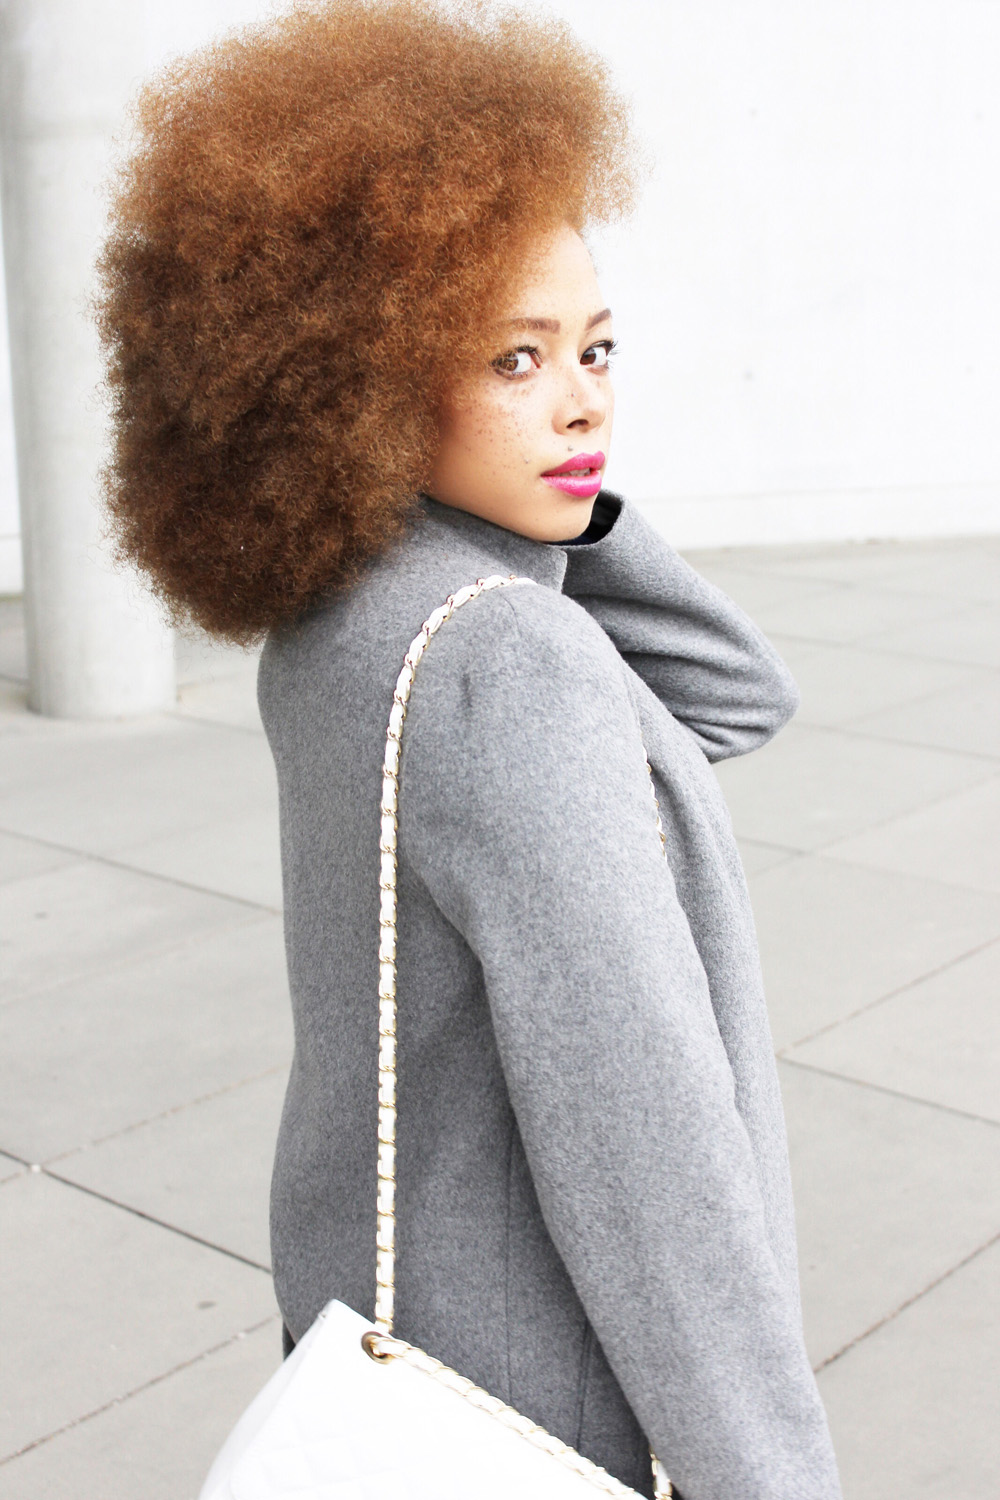 fatimayarie-afro-redcurls-greycoat-white-chanel-bag-img_3515